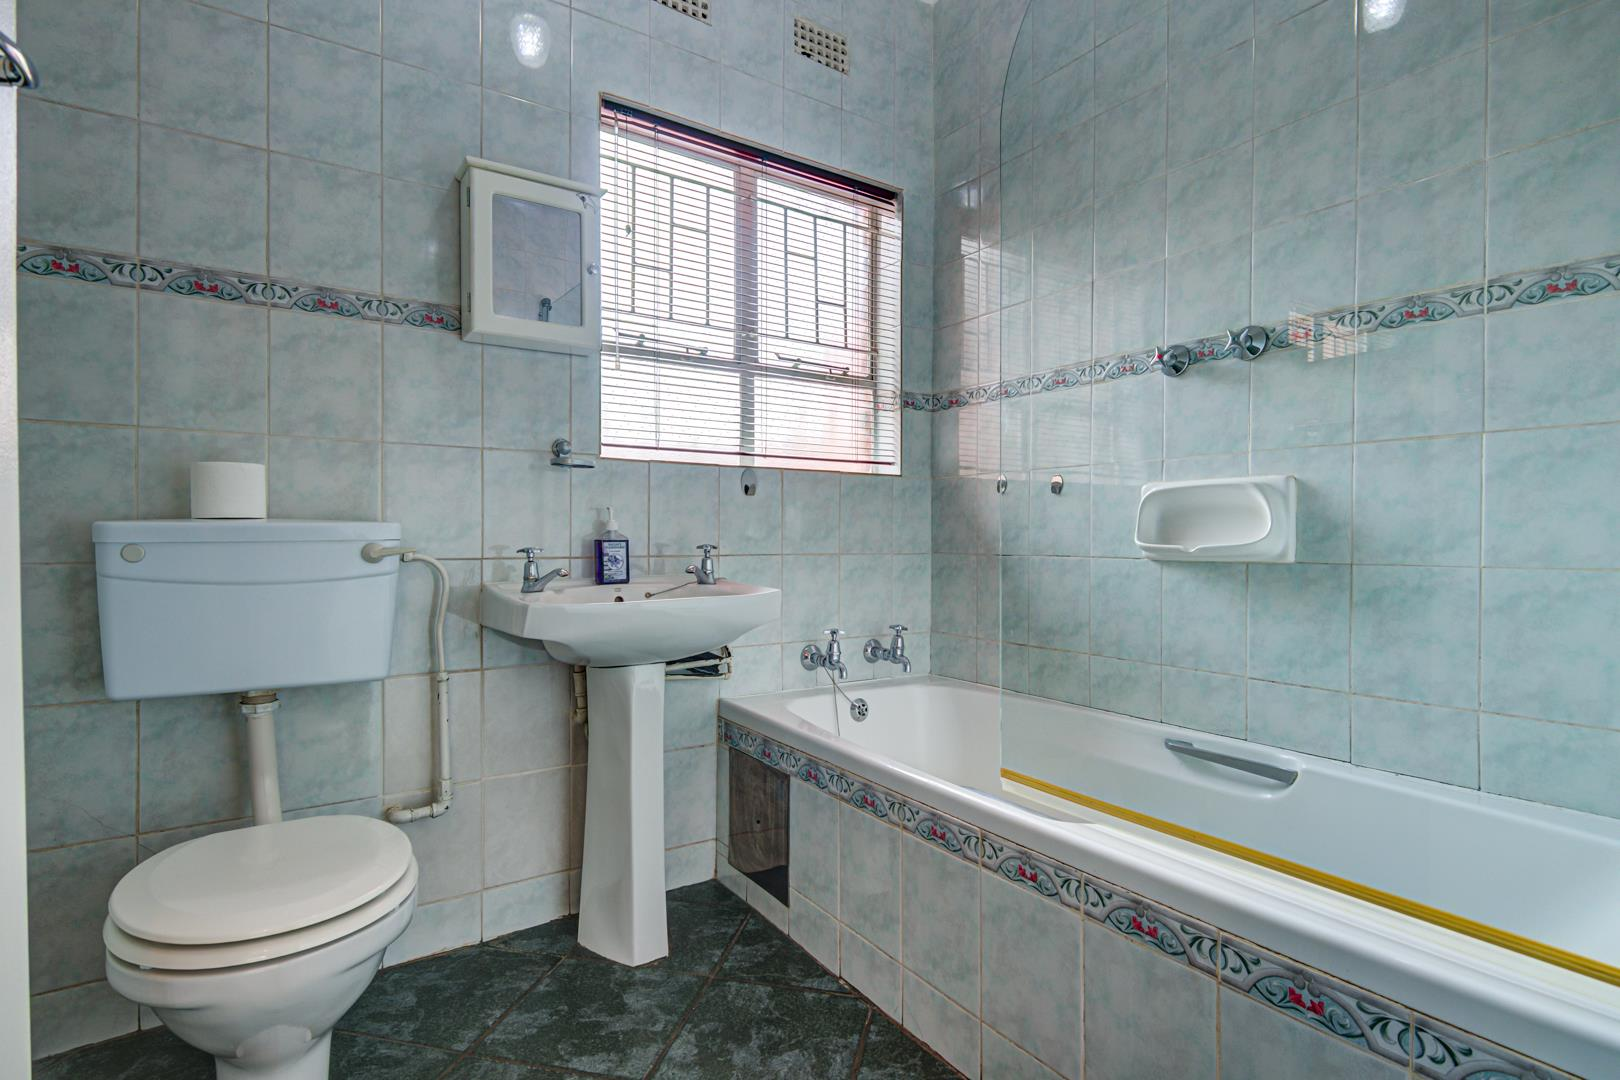 2 Bedroom Town house For Sale in Birchleigh North